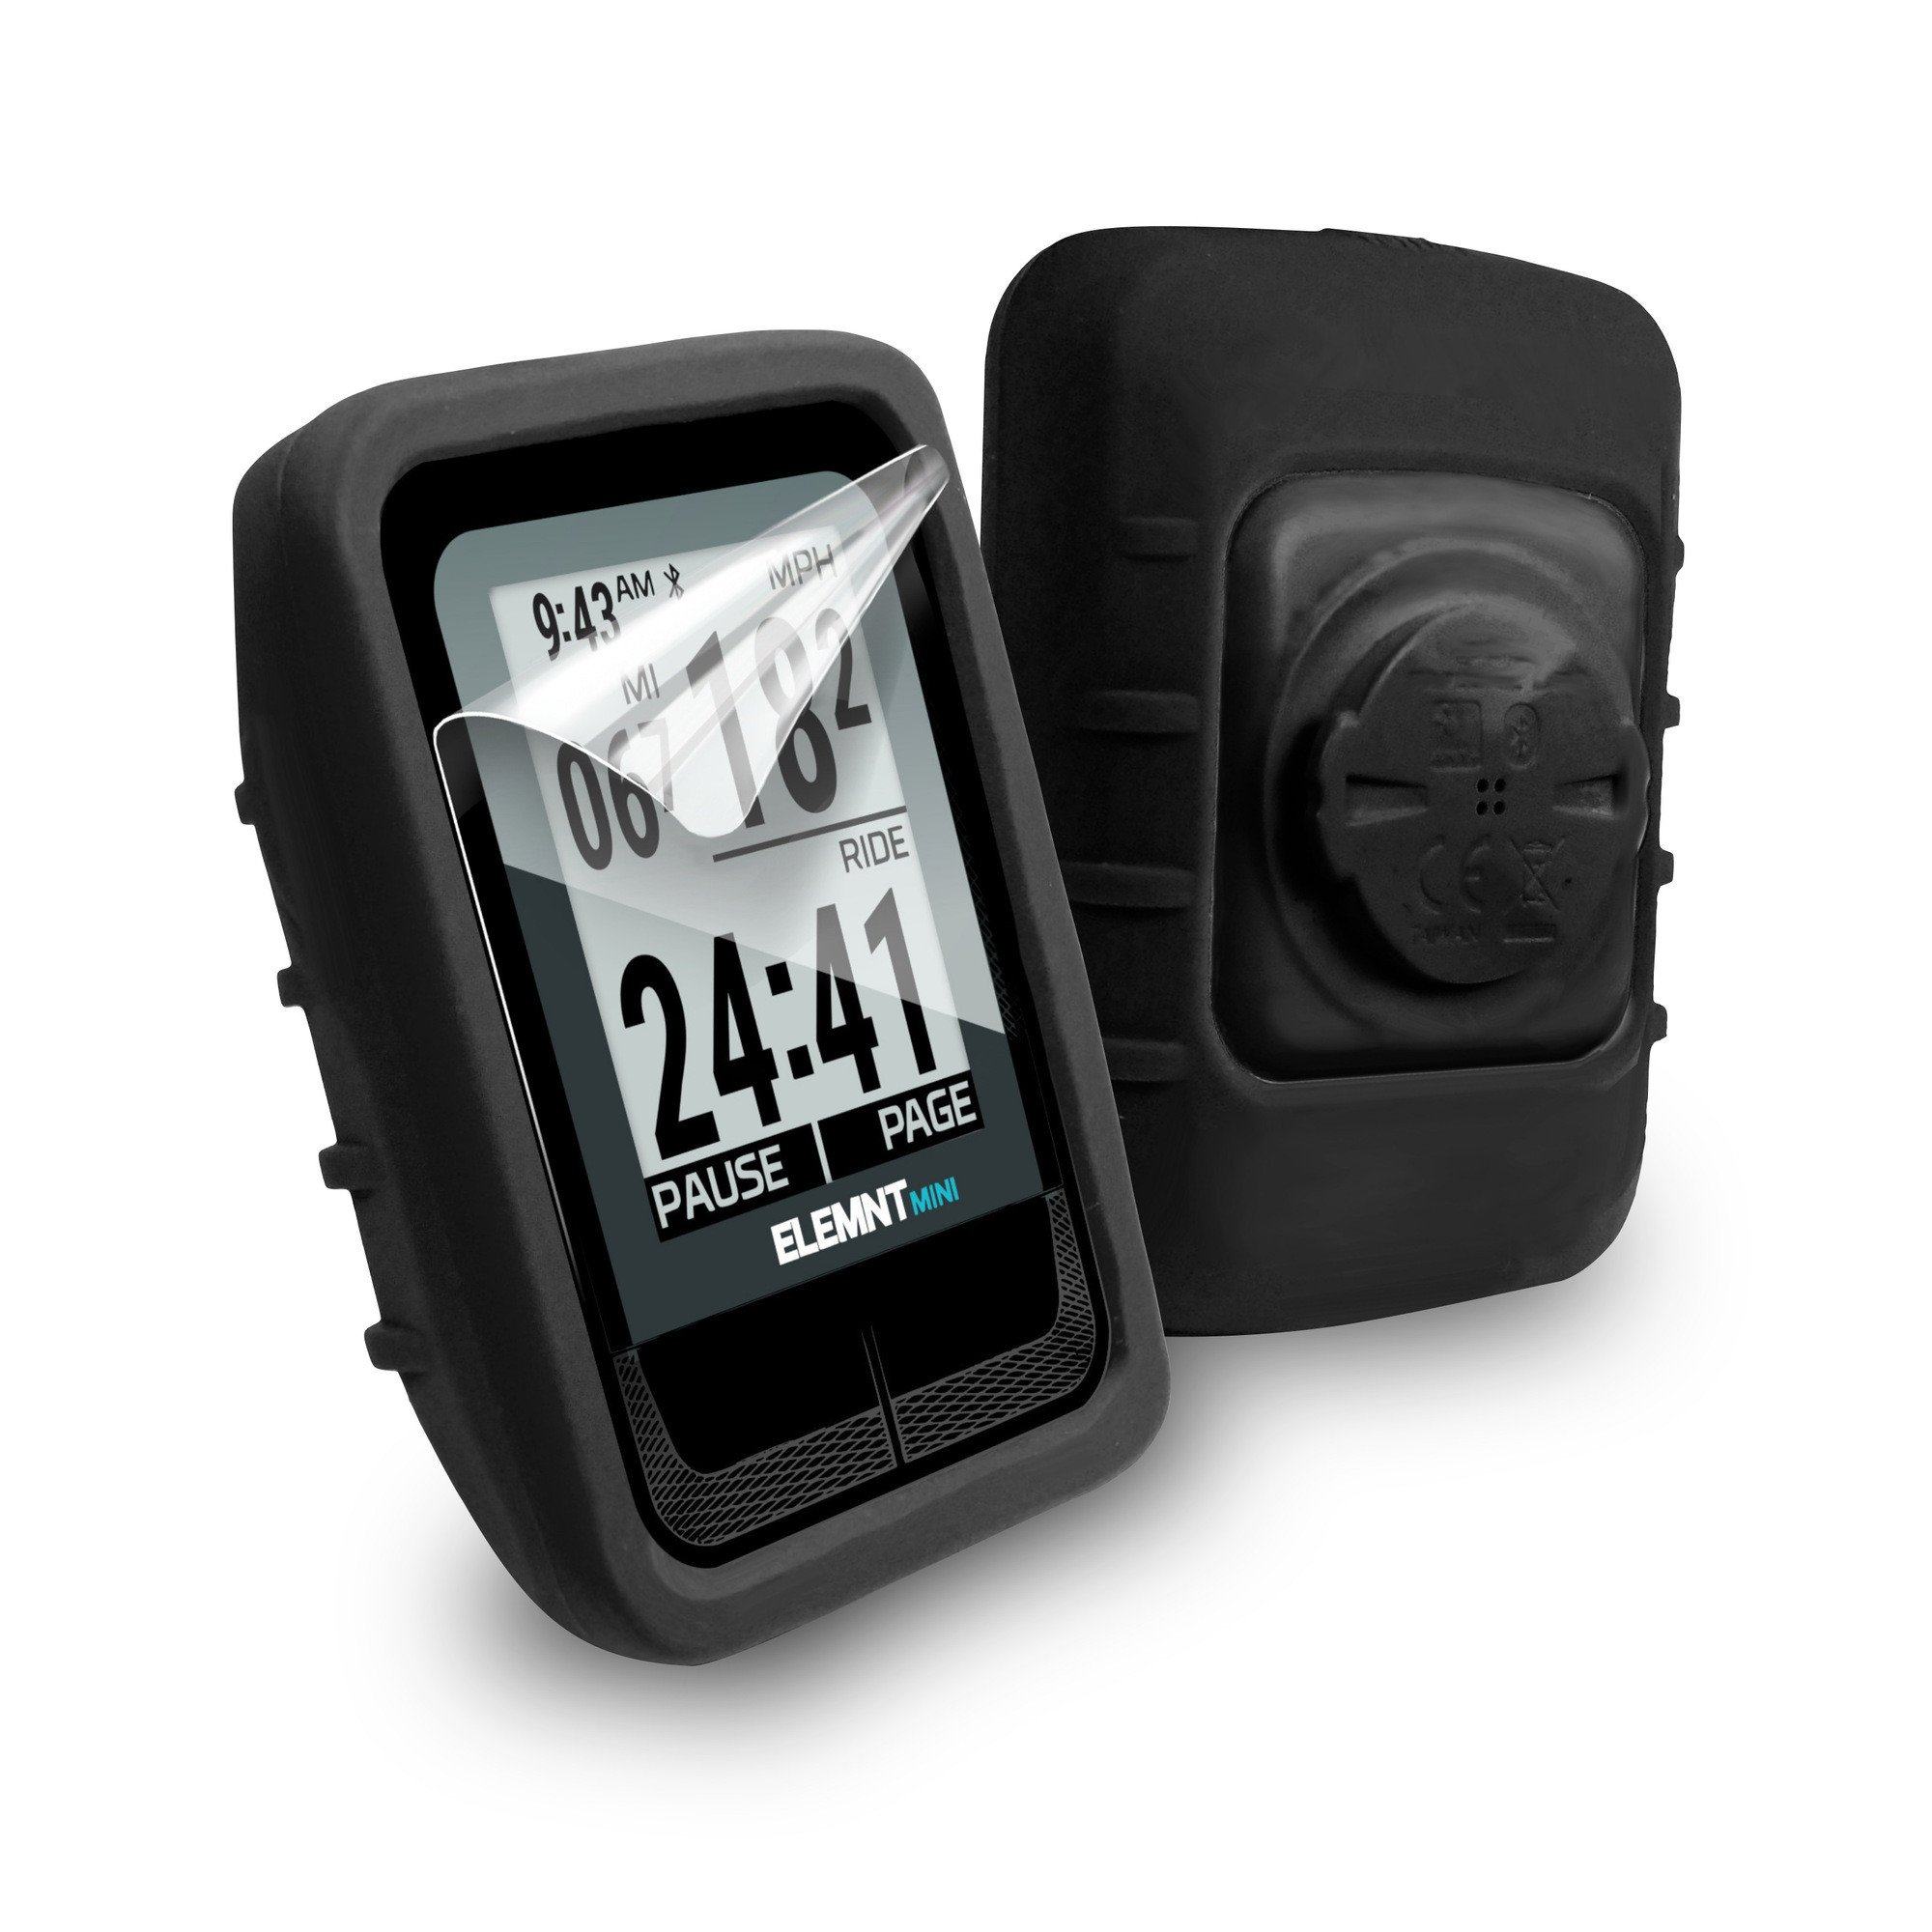 Tuff-luv Silicone Gel Skin Case & Screen Cover Protection for Wahoo Elemnt Mini - Black